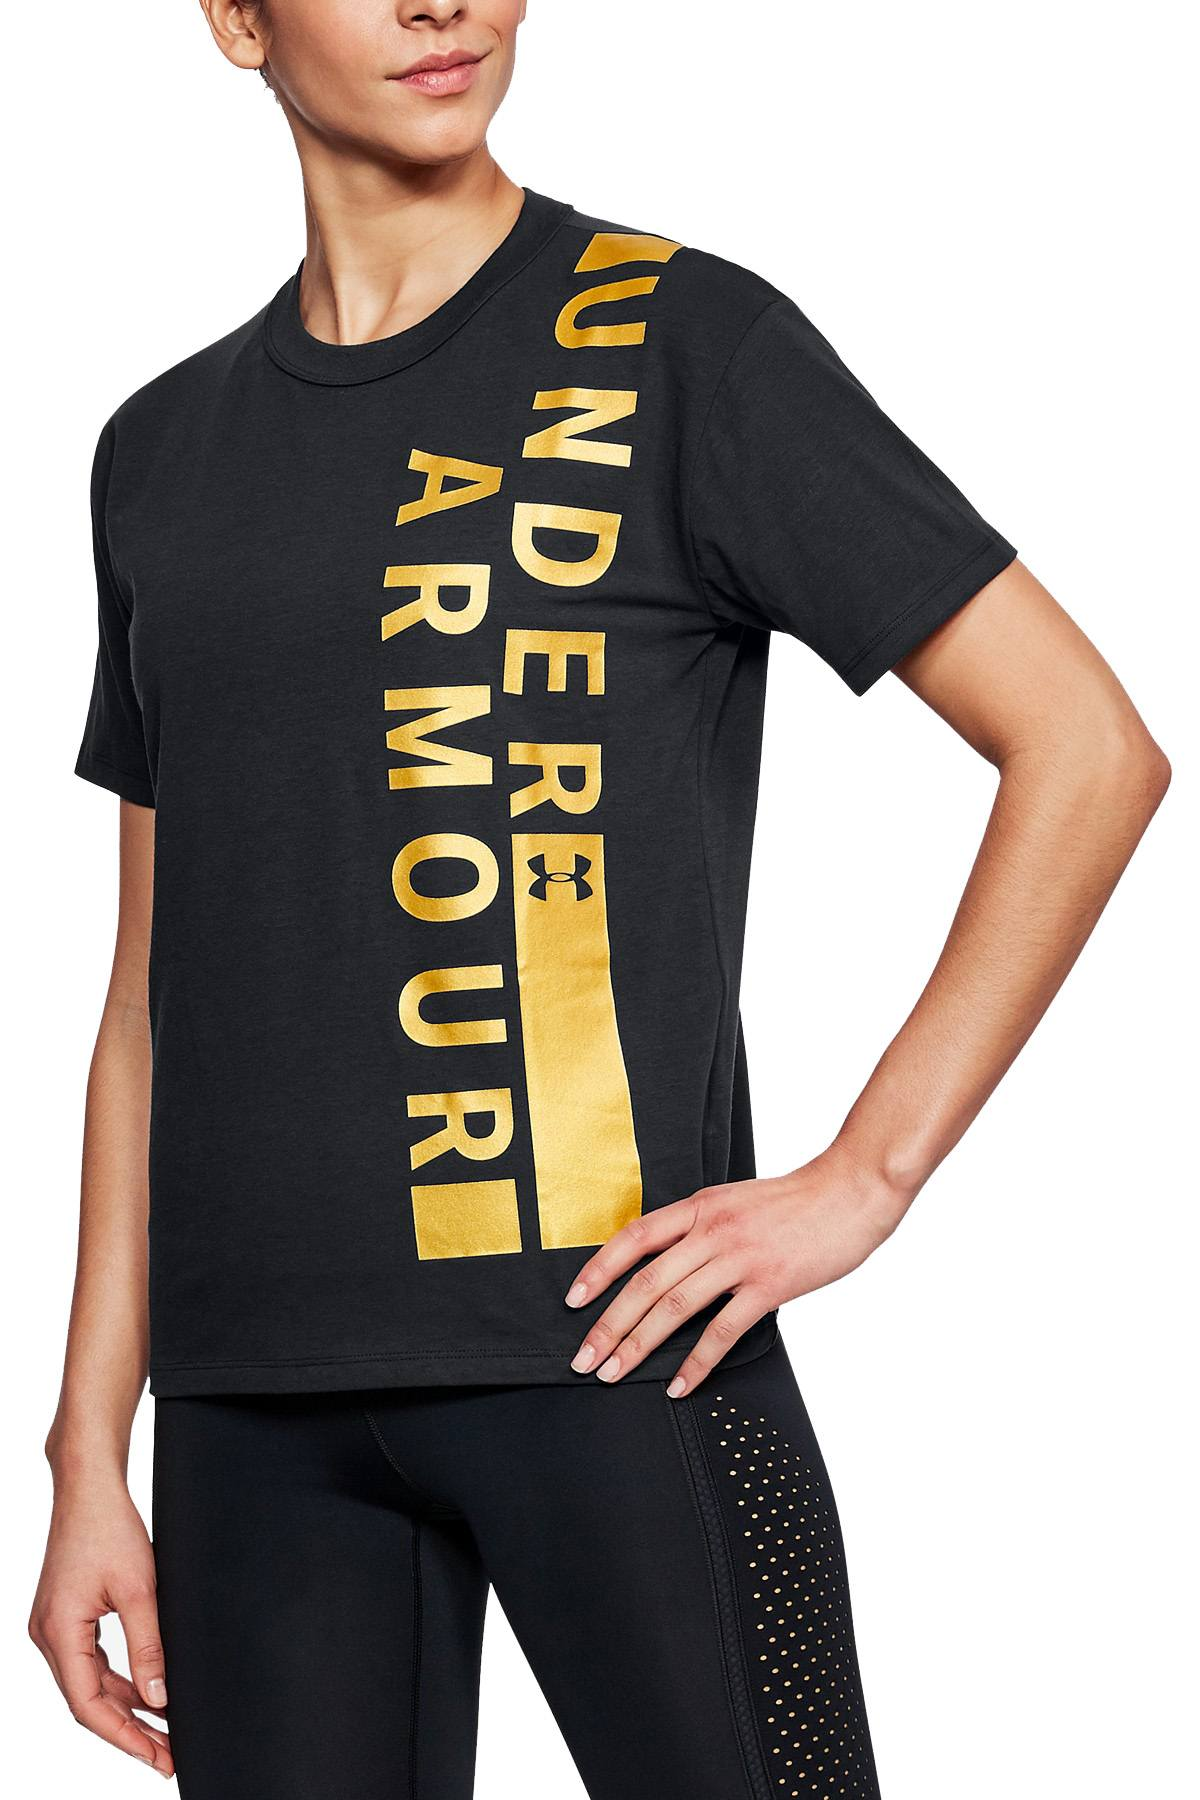 Under Armour Black/Gold Metallic Charged Cotton Girlfriend Tee